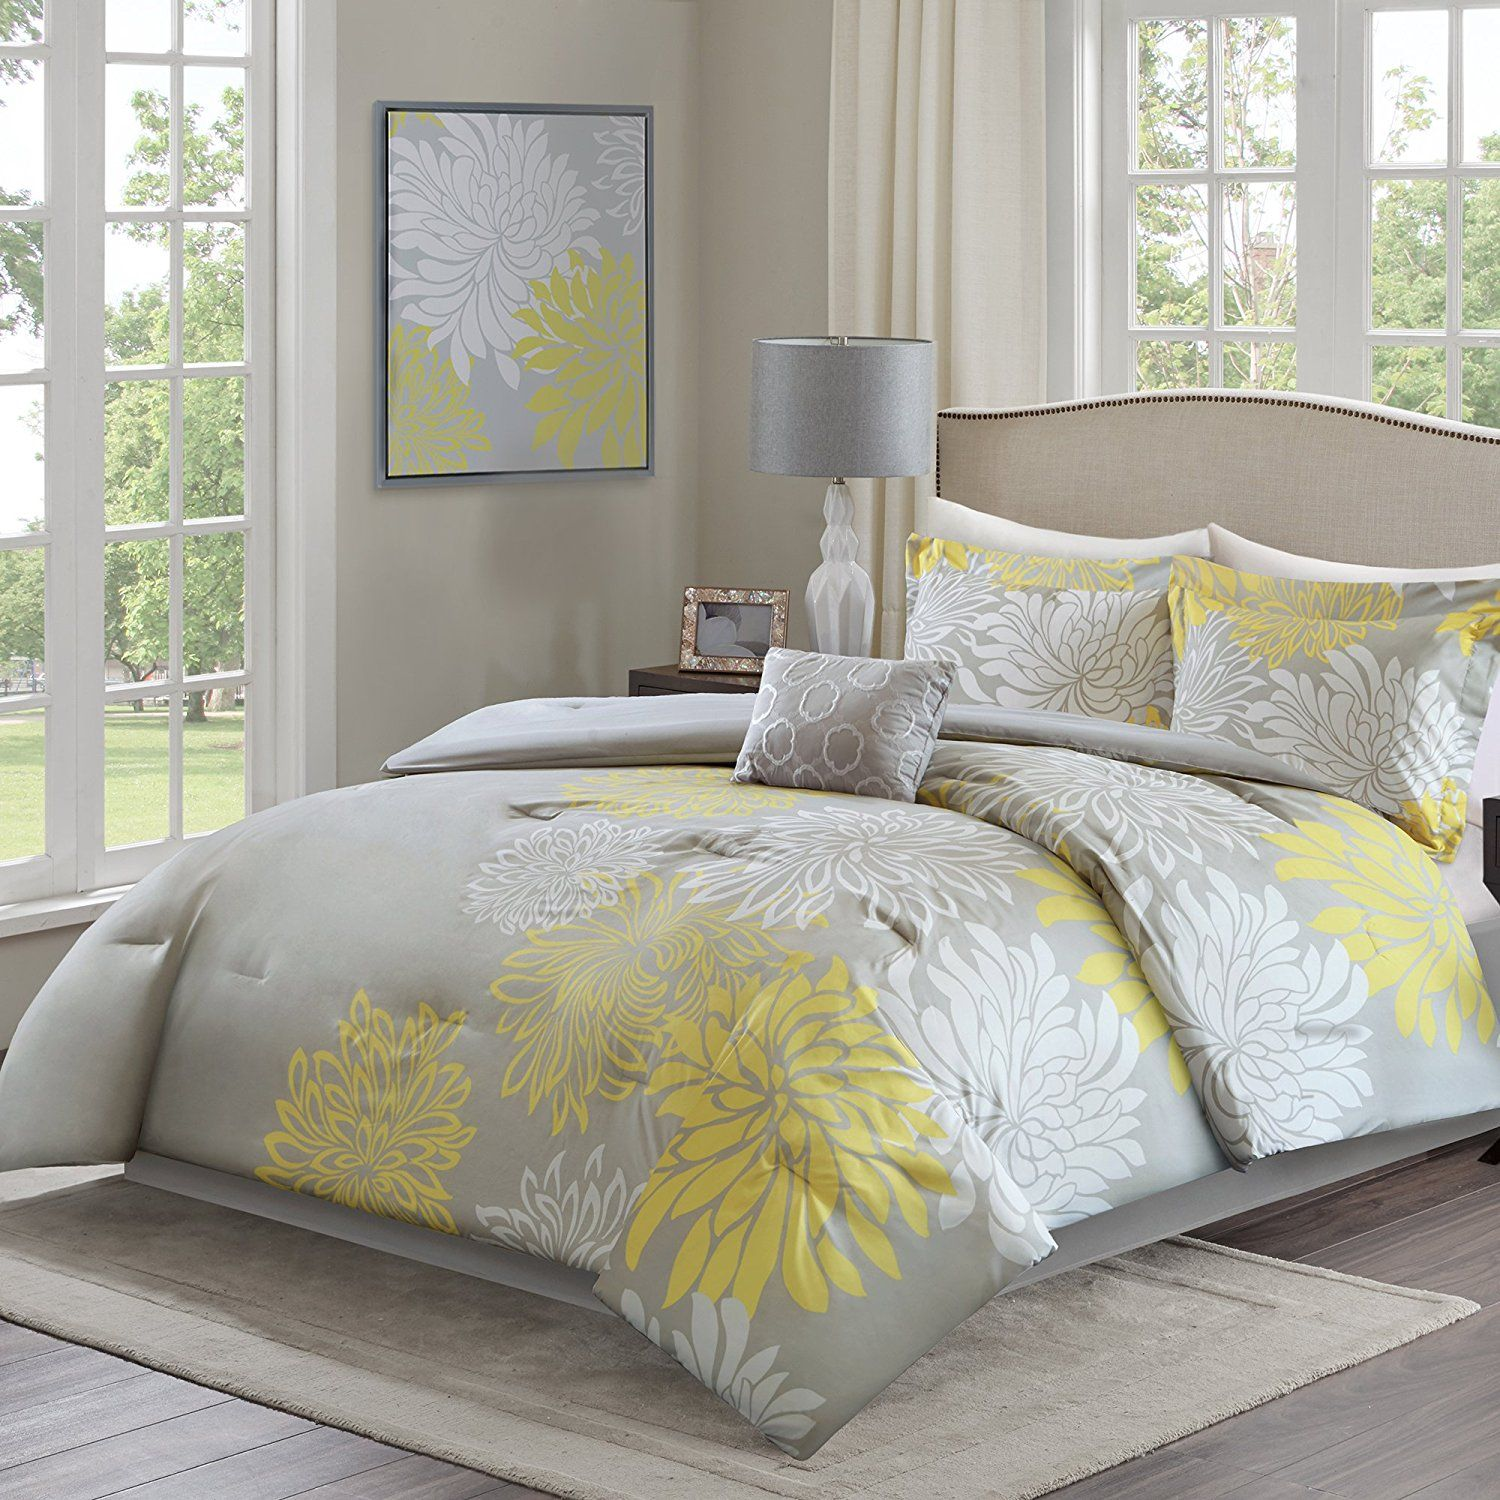 Comfort Spaces A Enya Comforter Set 5 Piece A Yellow Grey A